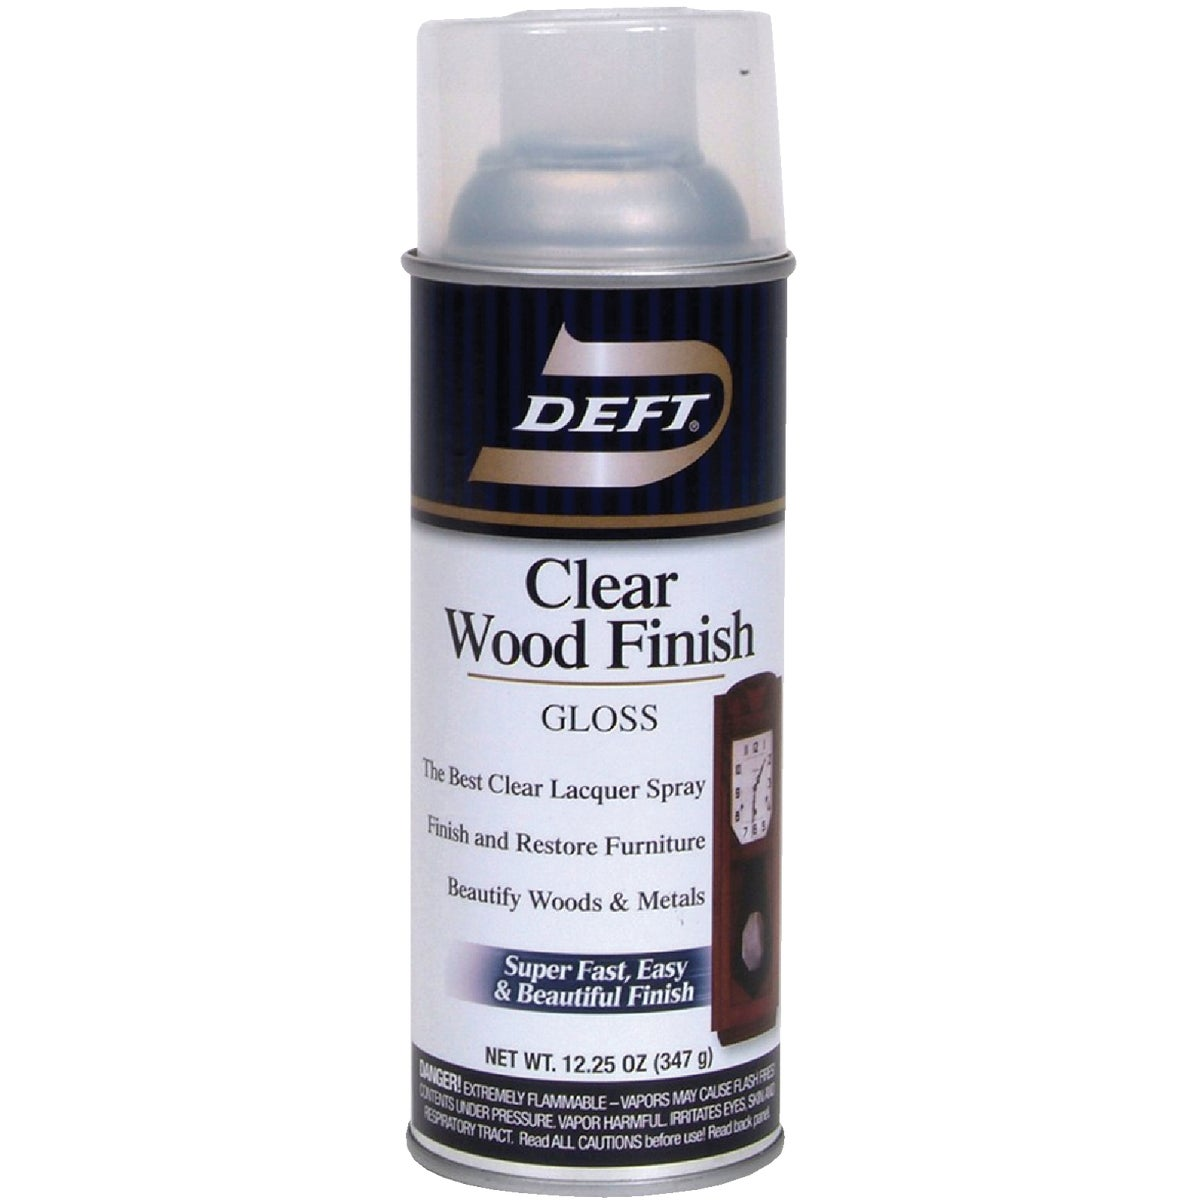 DEFT GLS SPRAY FINISH - DFT010/54 by Deft